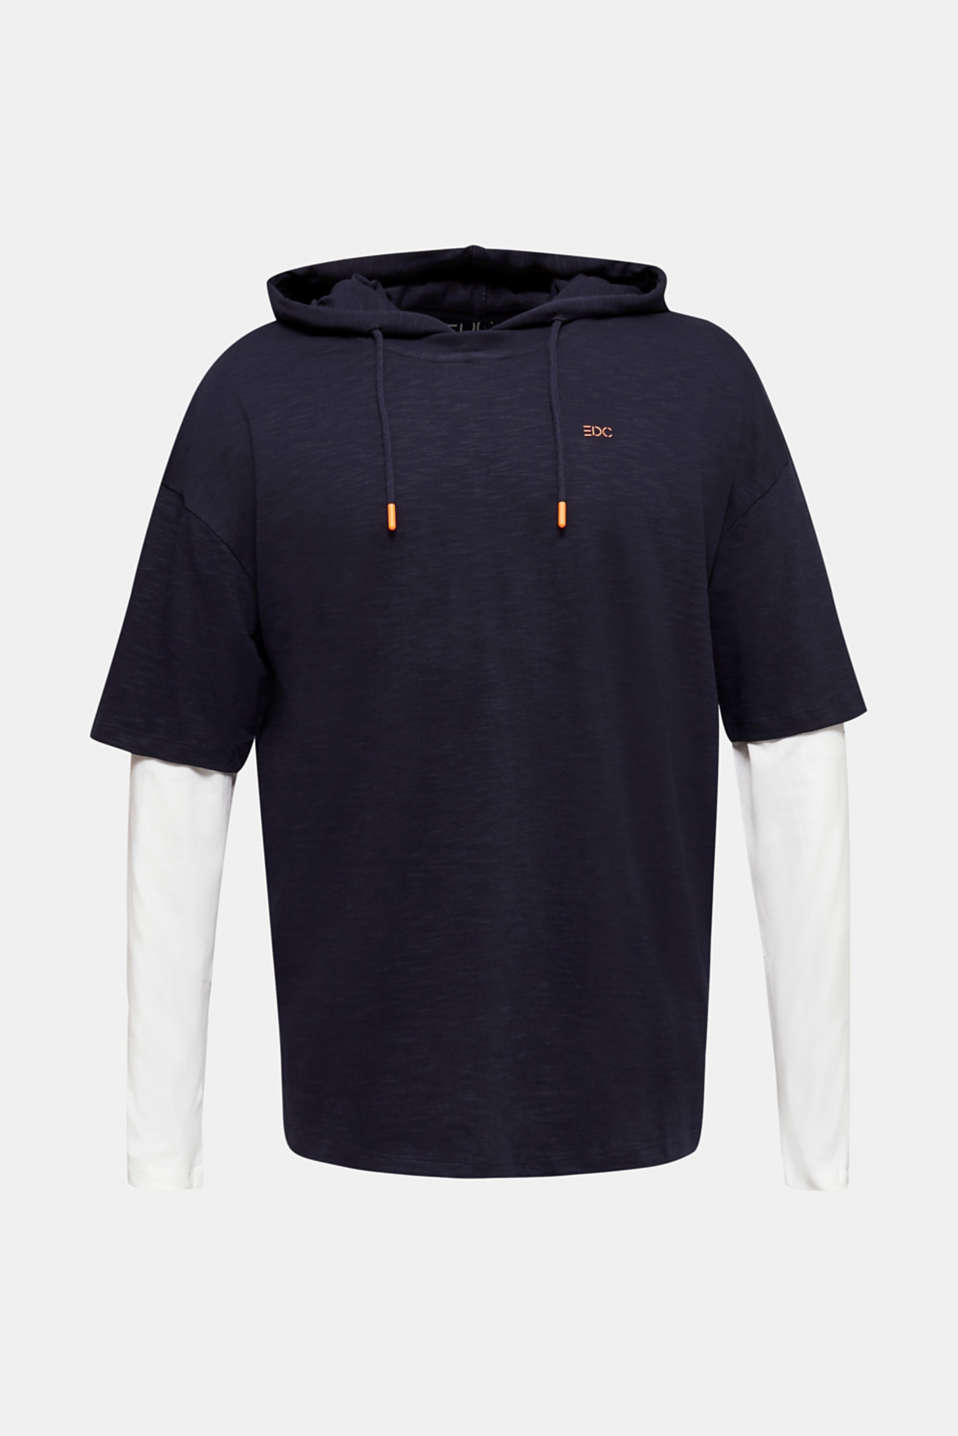 Layered jersey top with a hood, 100% cotton, NAVY 2, detail image number 7